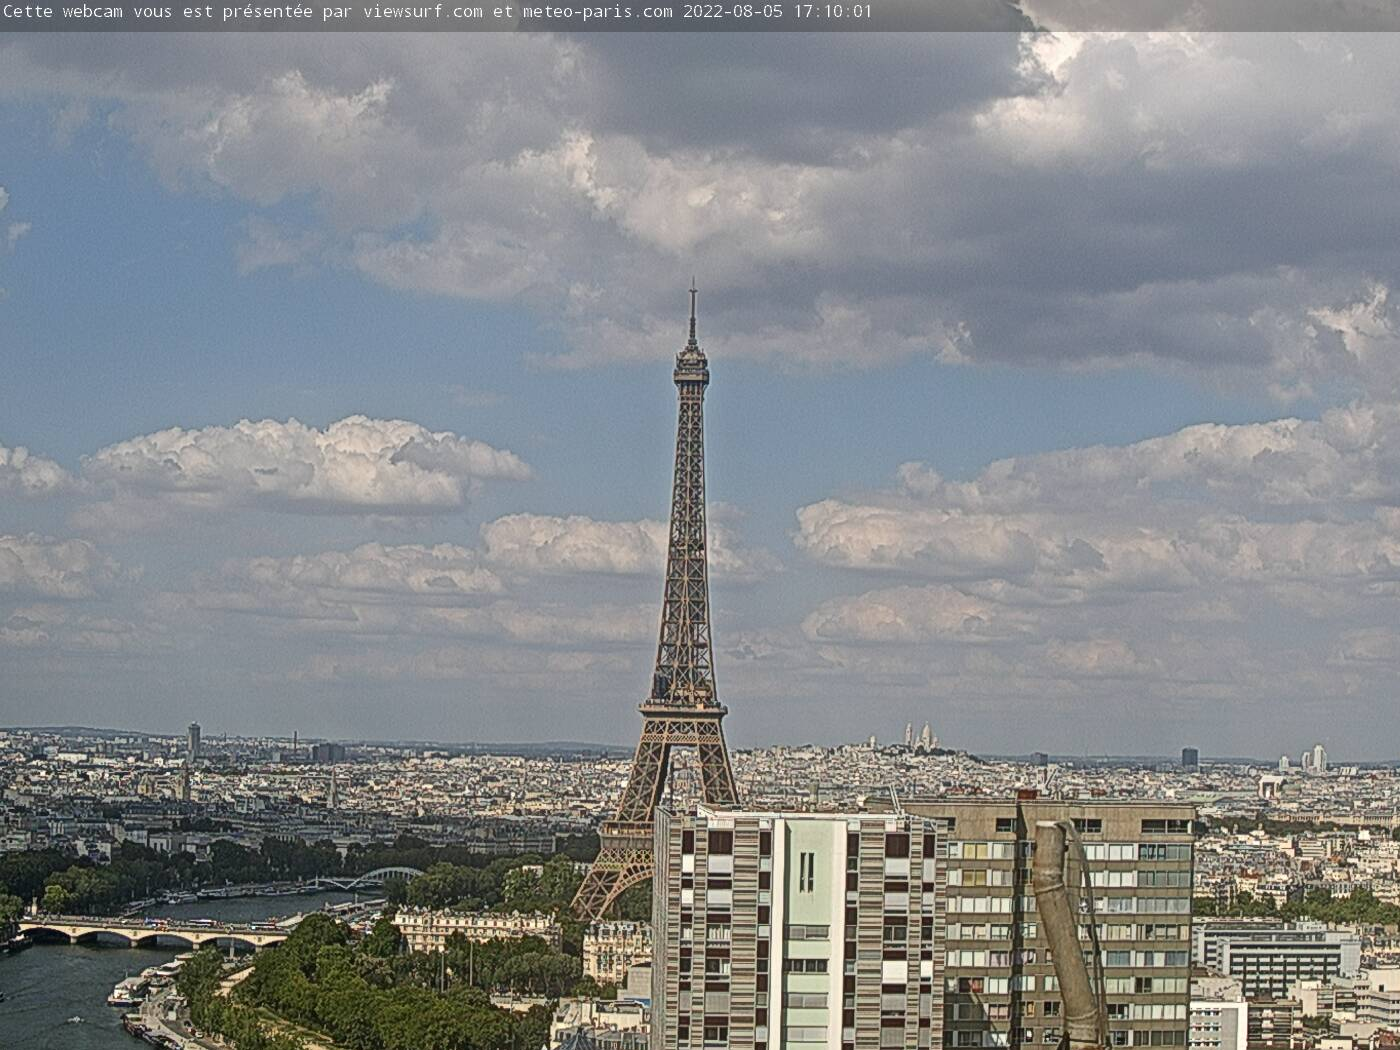 Notre webcam Paris Tour Eiffel - webcam Paris Eiffel Tower